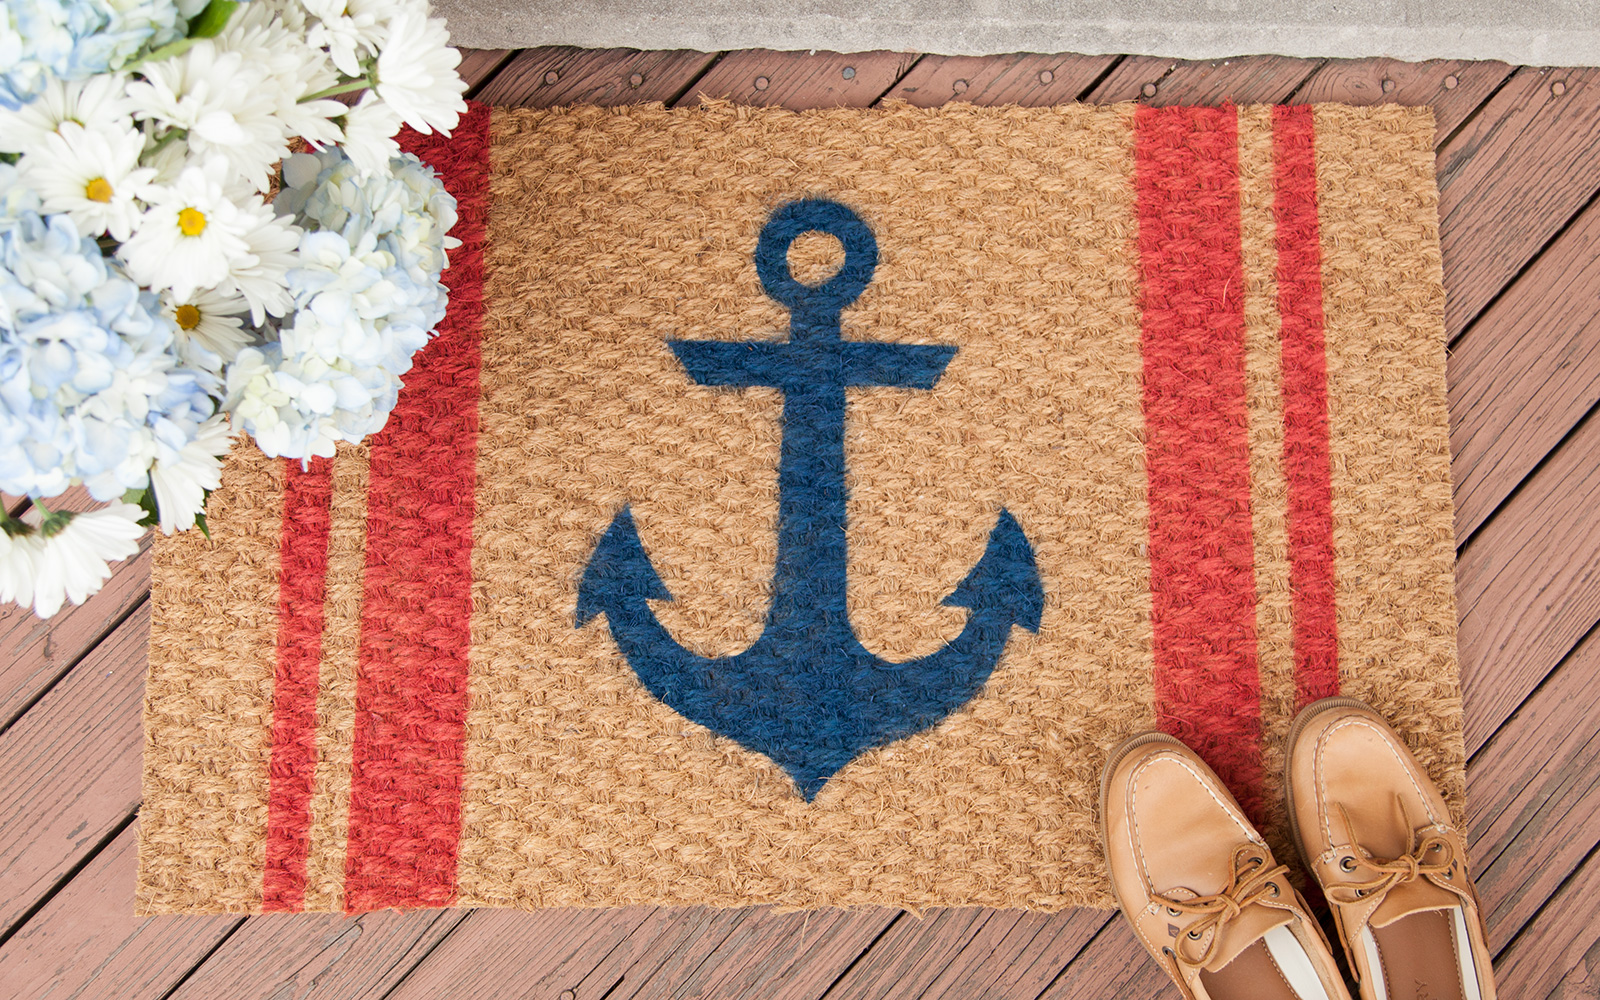 DIY Welcome Mat using ColorShot Outdoor Fabric Spray